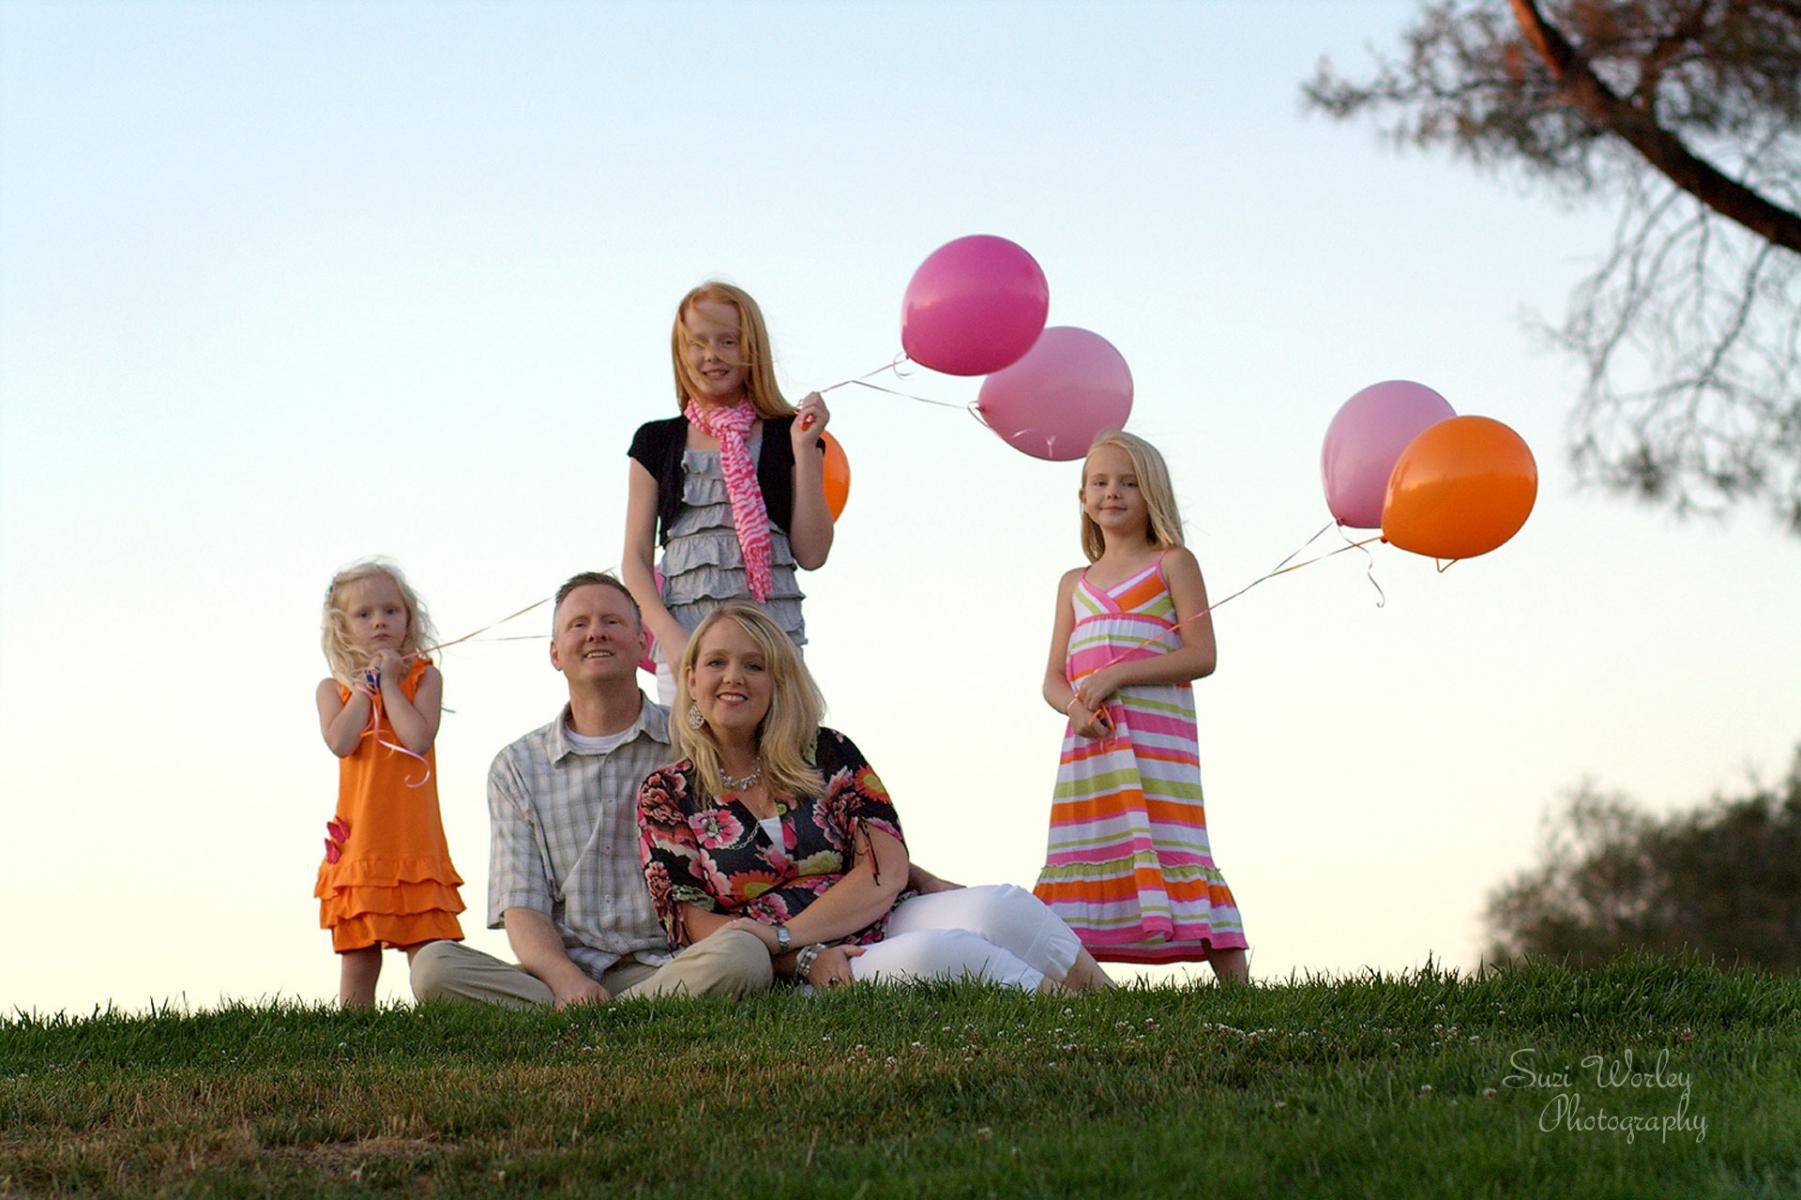 Fun springtime session with Balloons! Fall family session.  #pre-teengirls #TeenVogue #photosession  #familySession #SpringSession #SuziWorleyPhotography